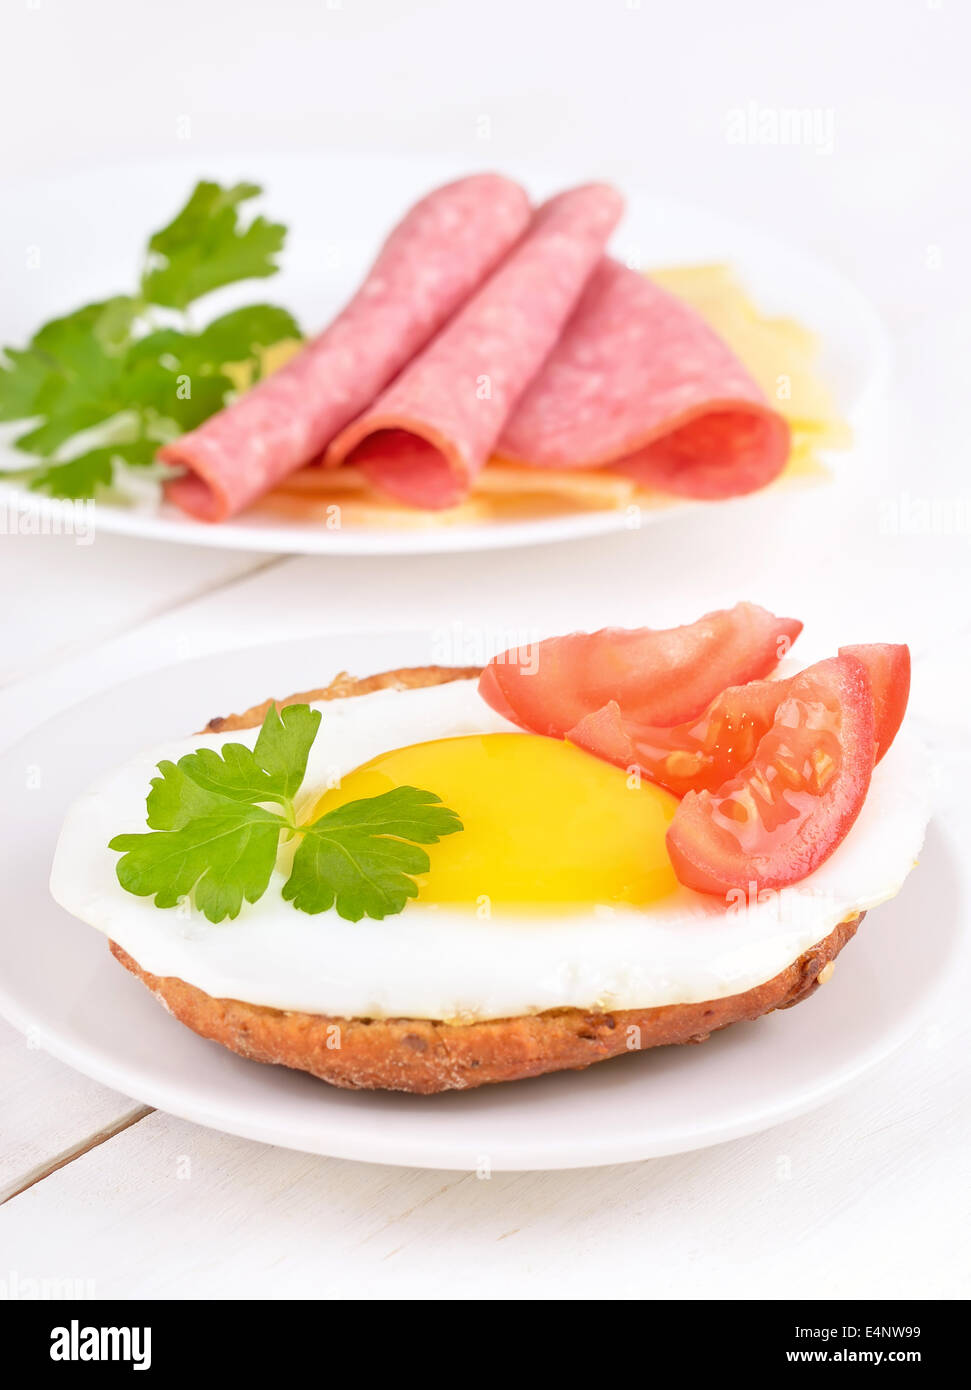 Sandwich with fried egg, tomato slices and parsley on wooden table - Stock Image